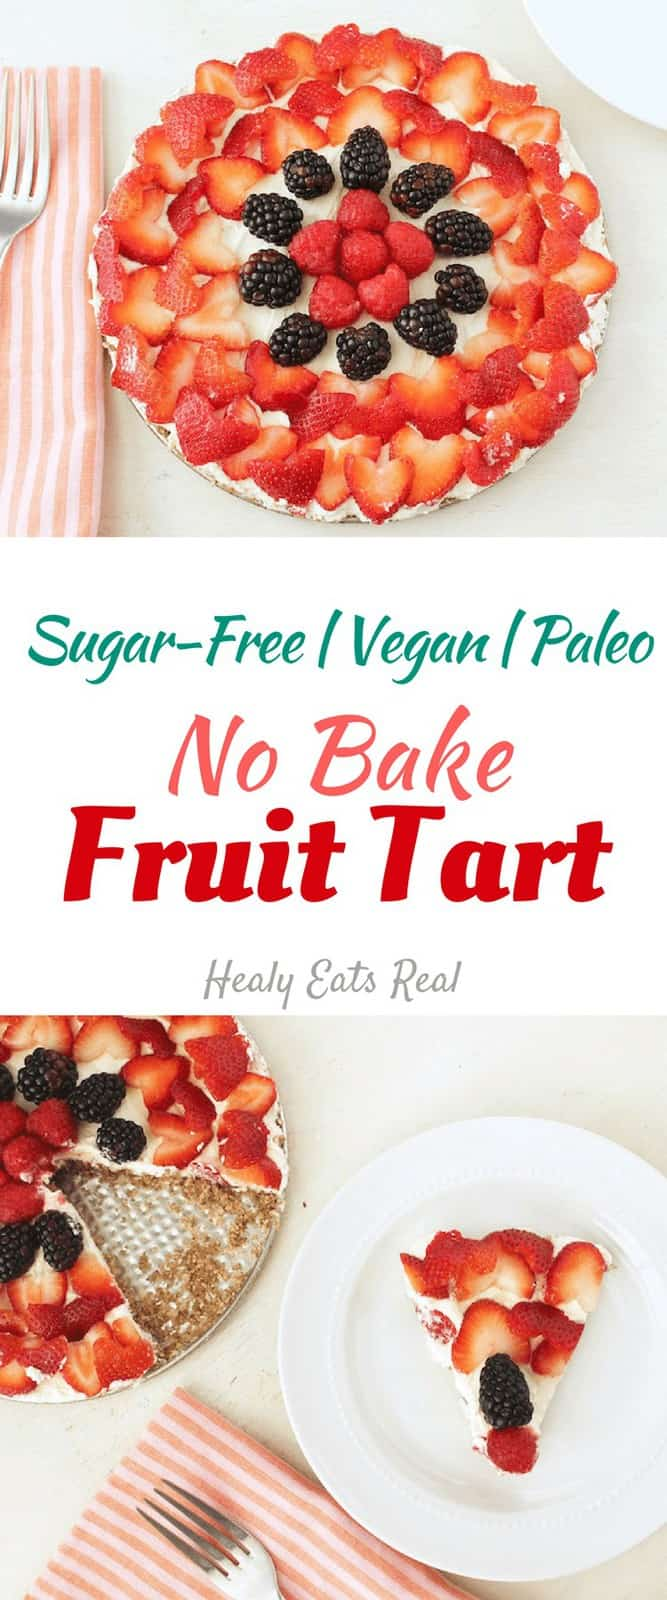 No Bake Fruit Tart Recipe (Sugar-Free, Vegan & Paleo)- This no bake fruit tart recipe has a nutty crust, rich creamy filling all topped off with bright sweet berries. It's also sugar free, vegan, gluten free, dairy free and paleo! It has become one of my favorite healthy desserts to serve at parties or holidays. #tart #fruit #sugarfree